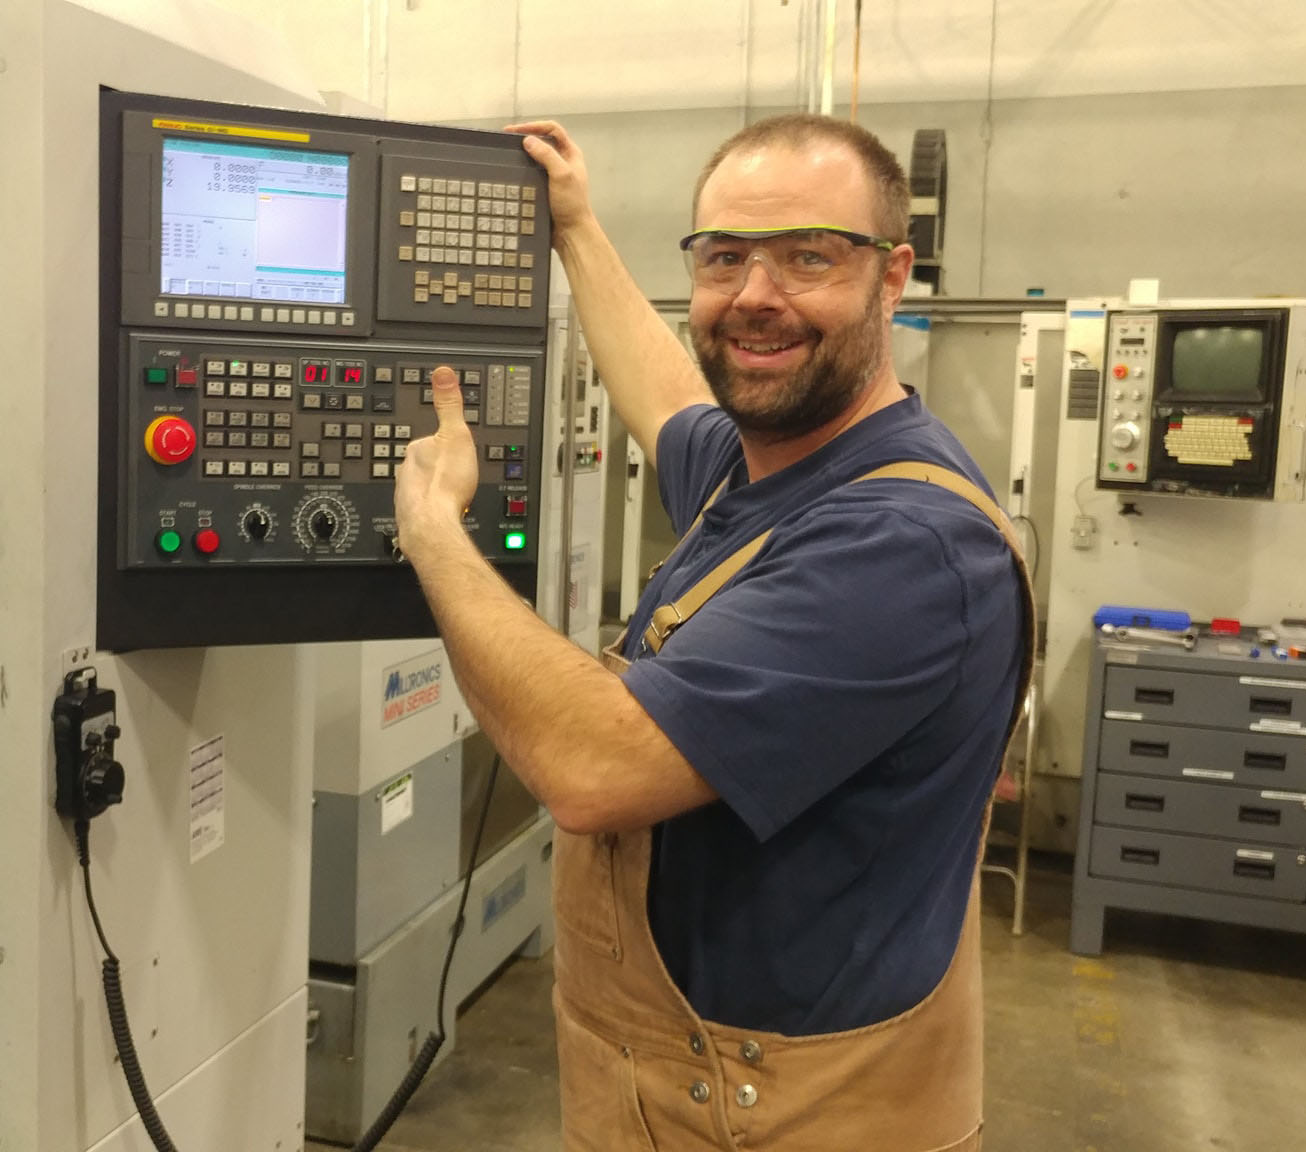 white male standing in front of a CNC maching smiling